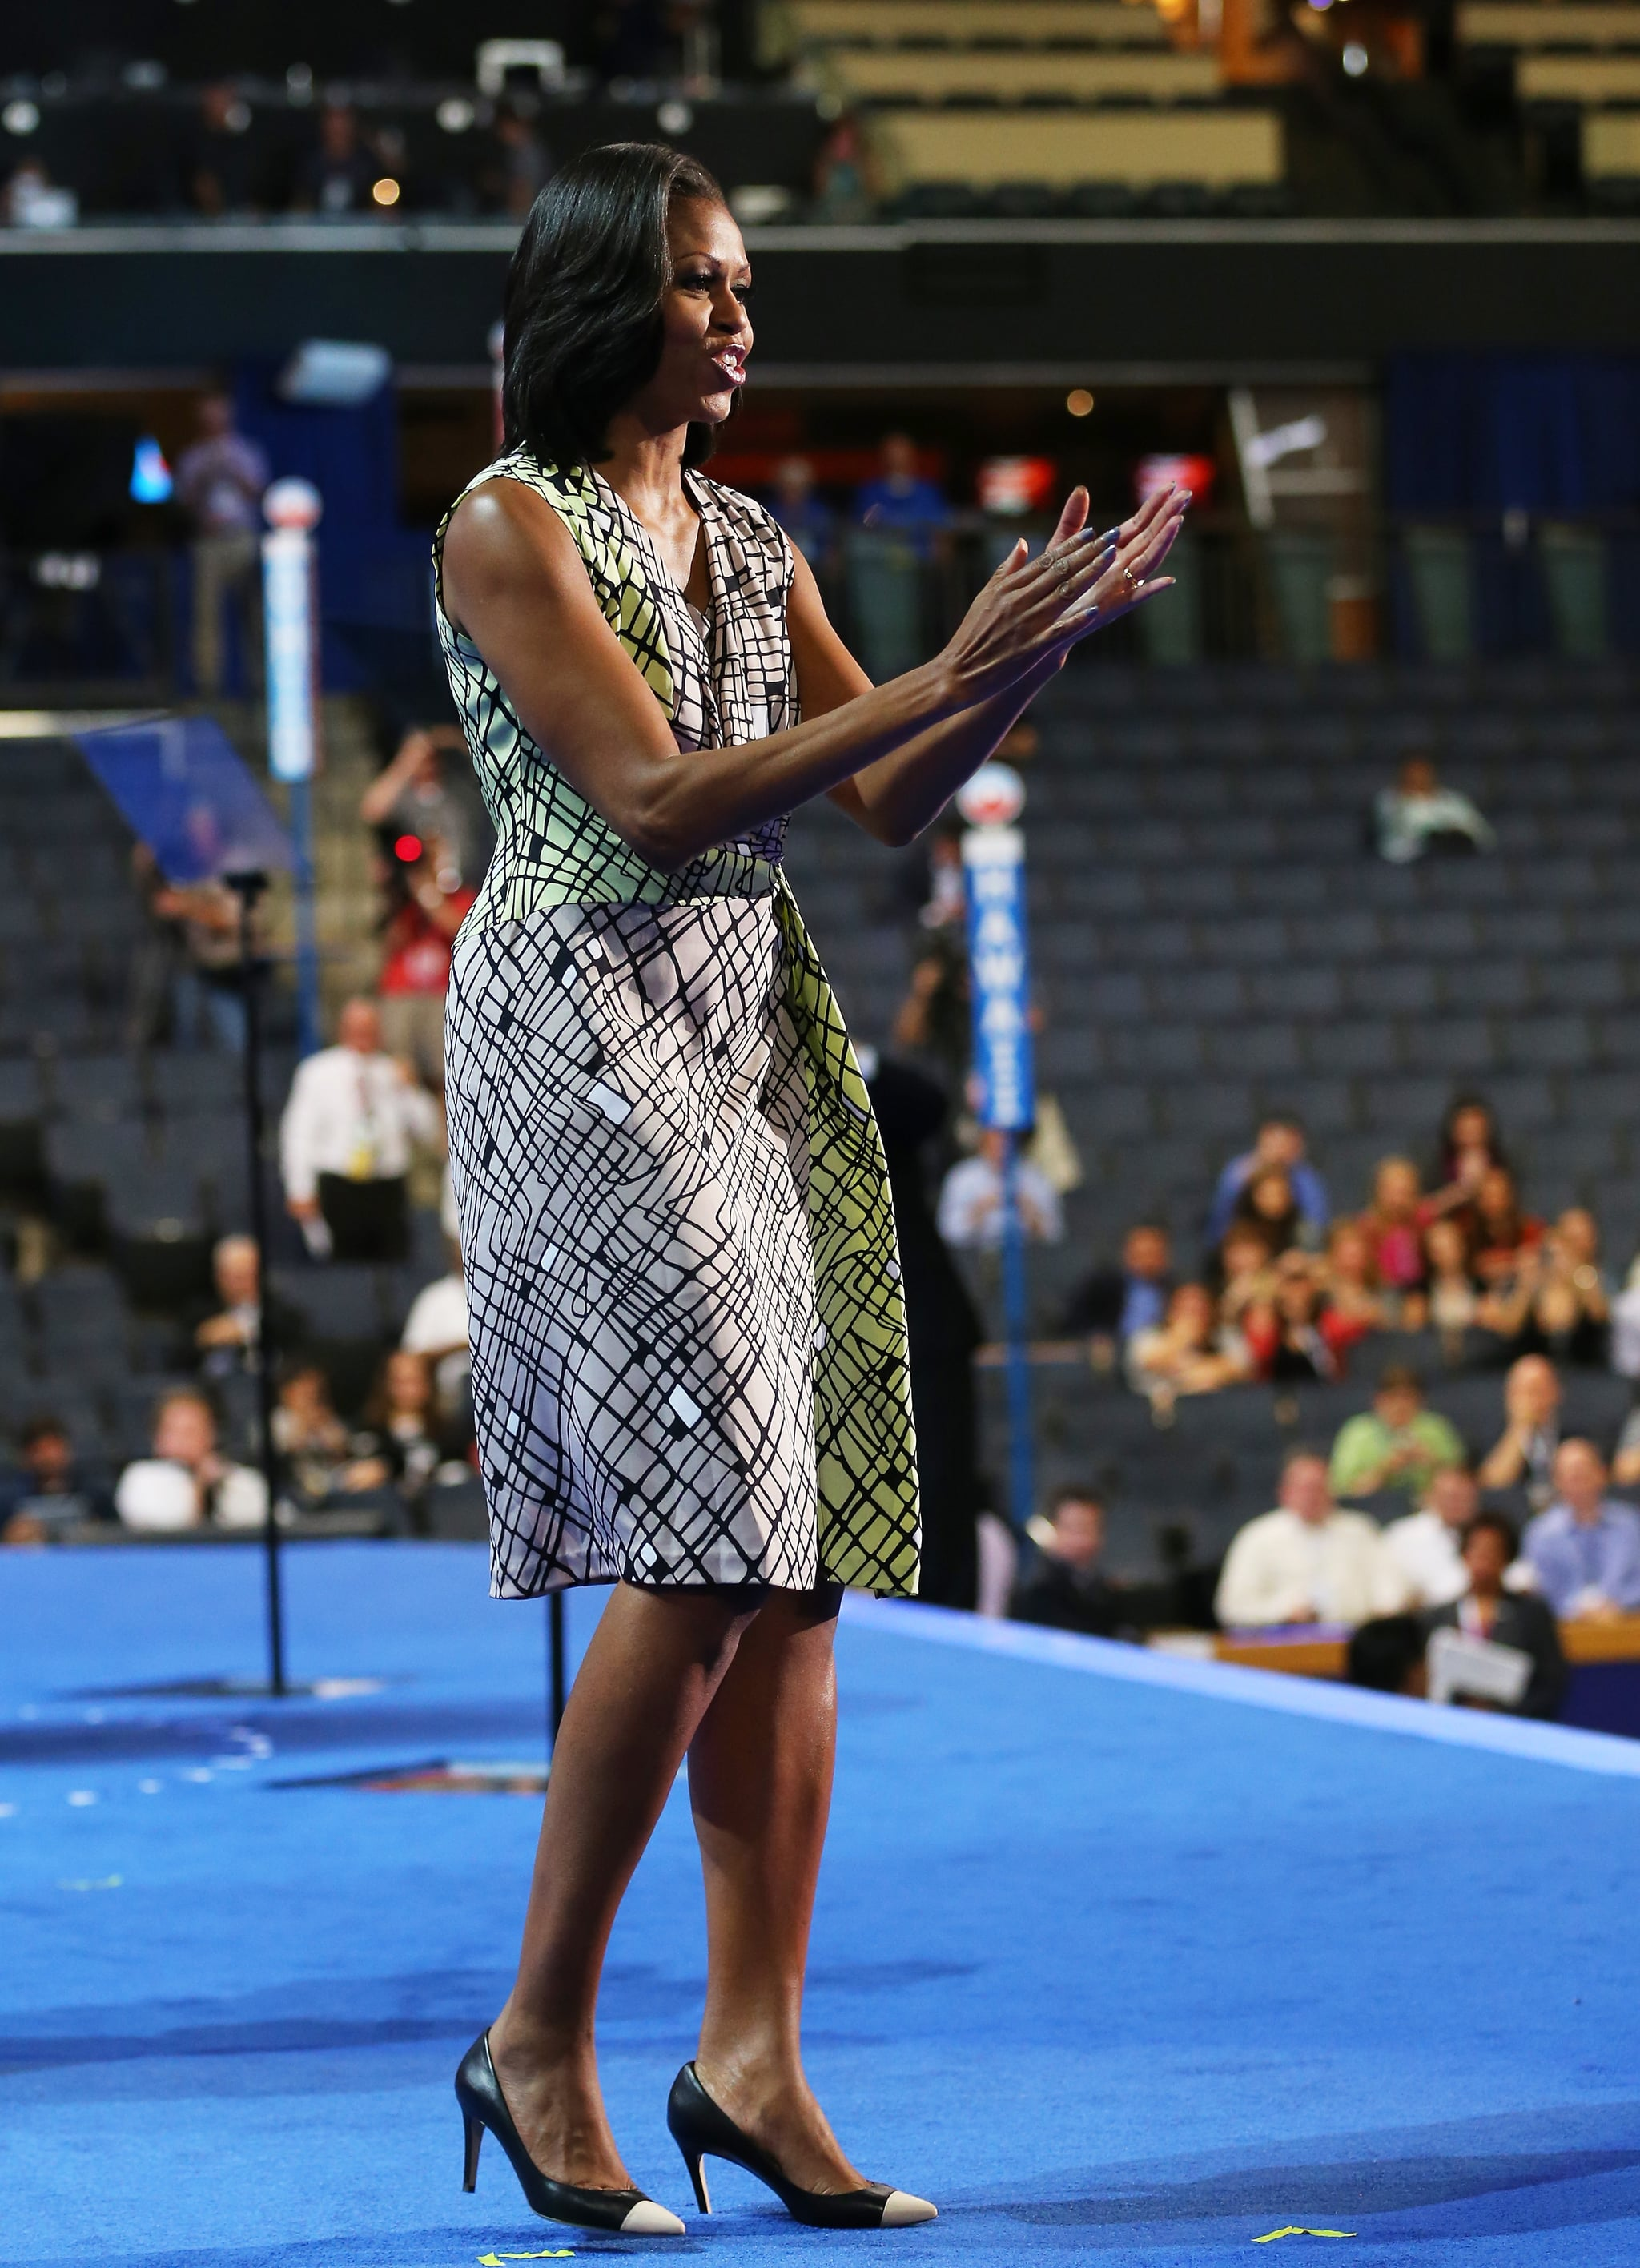 During a soundcheck pre-DNC festivities, the FLOTUS was spotted in a cool tan-and-lime abstract-printed Diane von Furstenberg dress with cap-toe Giuseppe Zanotti pumps.